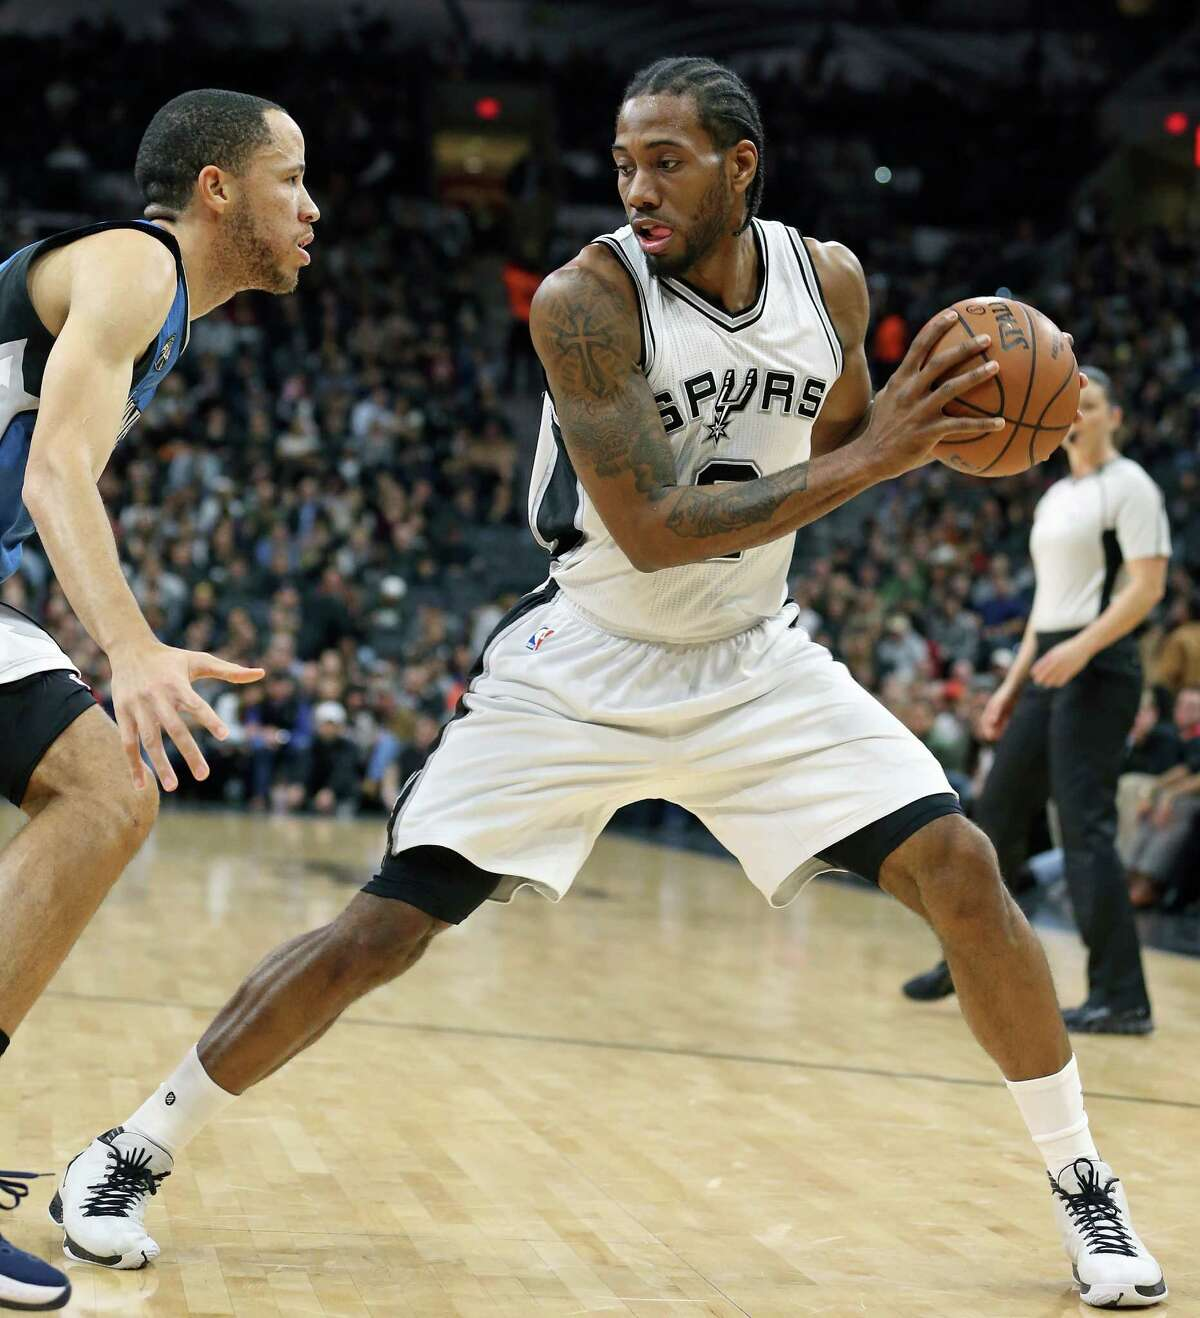 Kawhi Leonard tests Tayshaun Prince on the wing as the Spurs host the Minnesota Timberwolves at the AT&T Center on December 28, 2015.